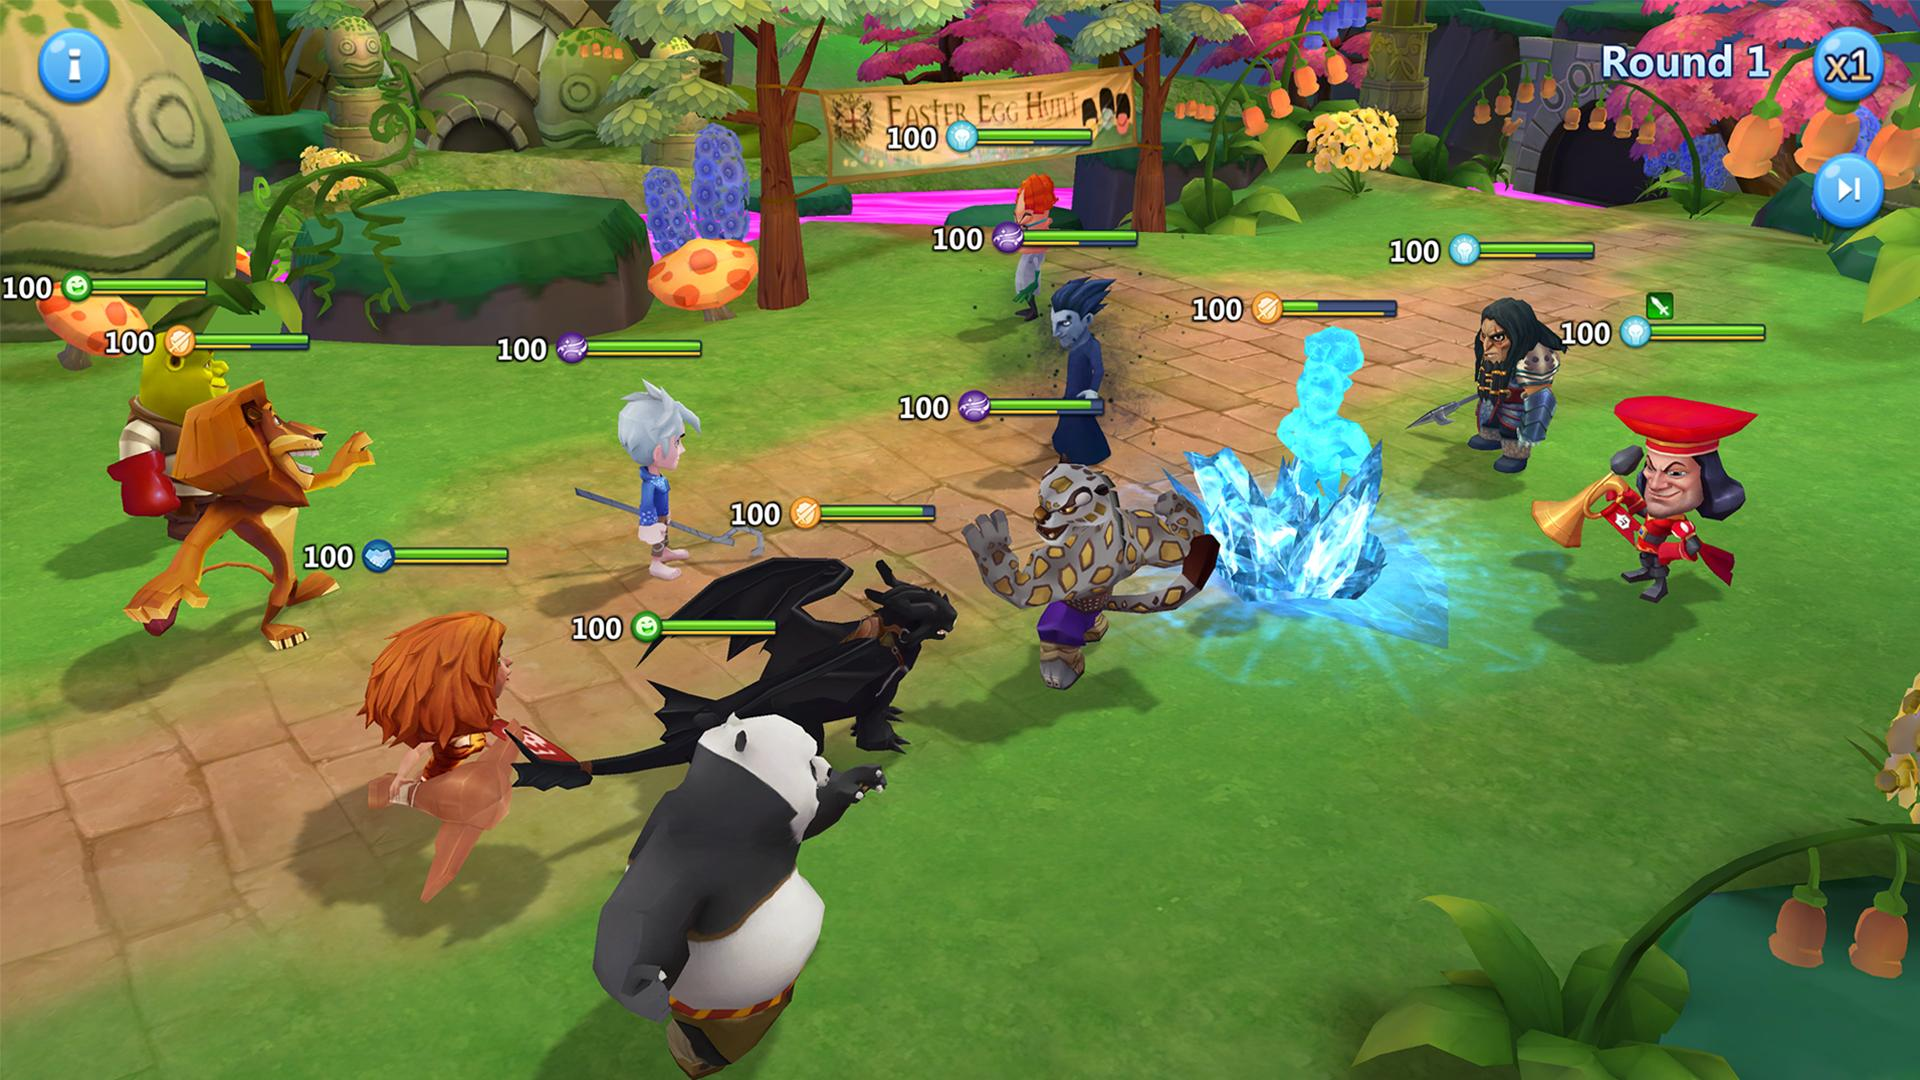 Download DreamWorks Universe of Legends on PC with BlueStacks